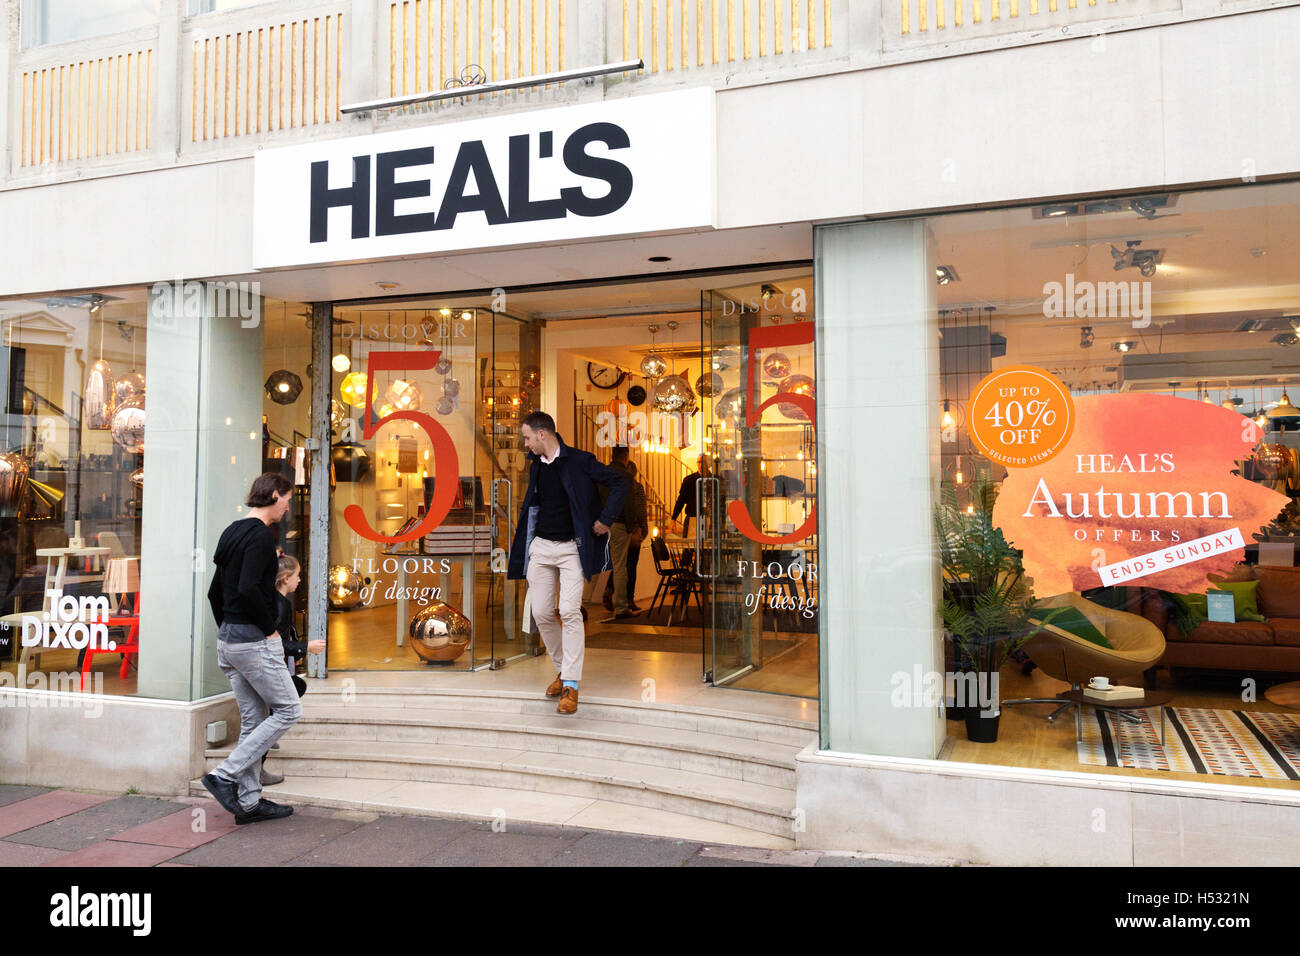 Heal's store, Brighton Sussex UK - Stock Image